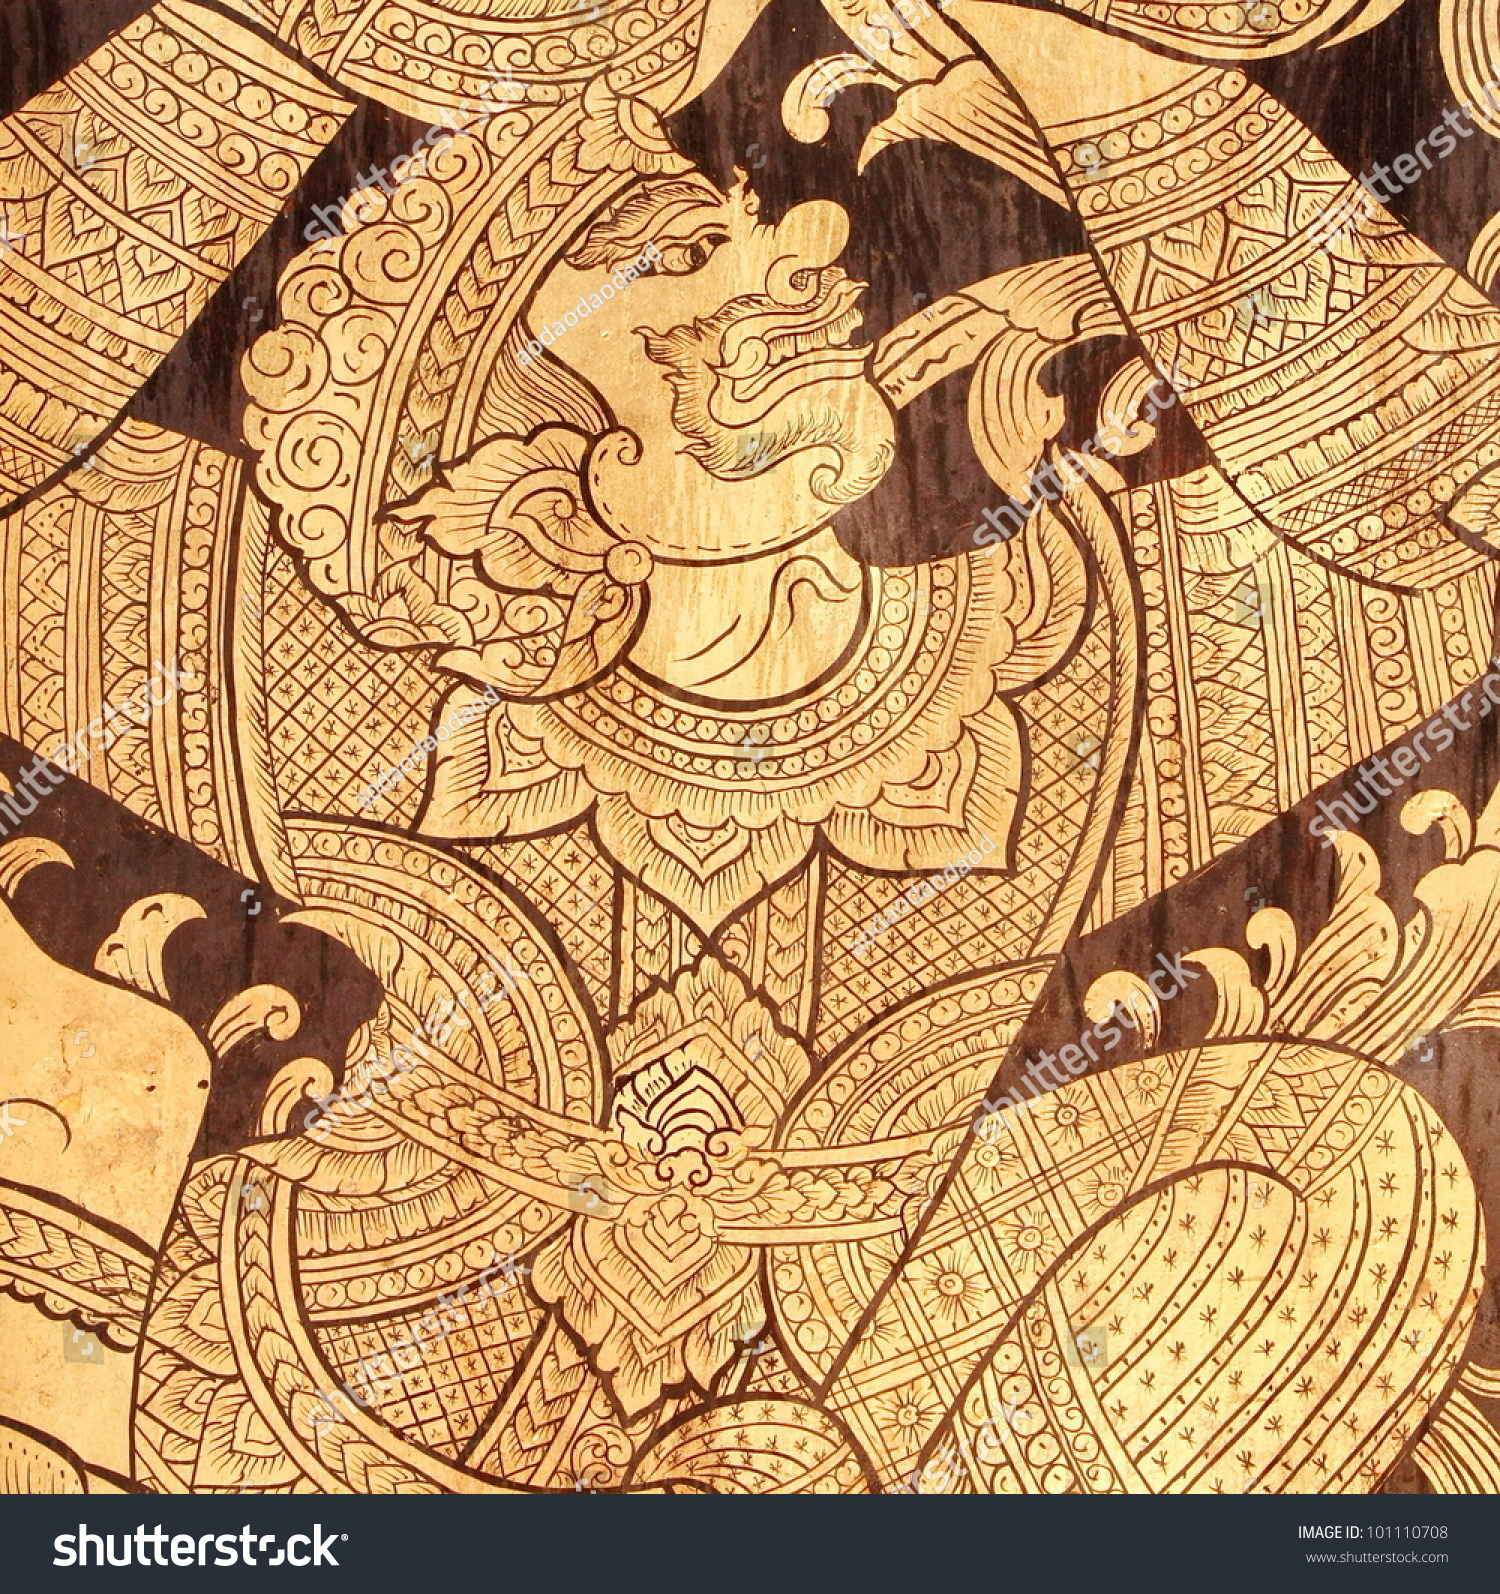 Ancient Thai Art Hanumanmonkey Temple Wall Stock Photo (Royalty Free ...